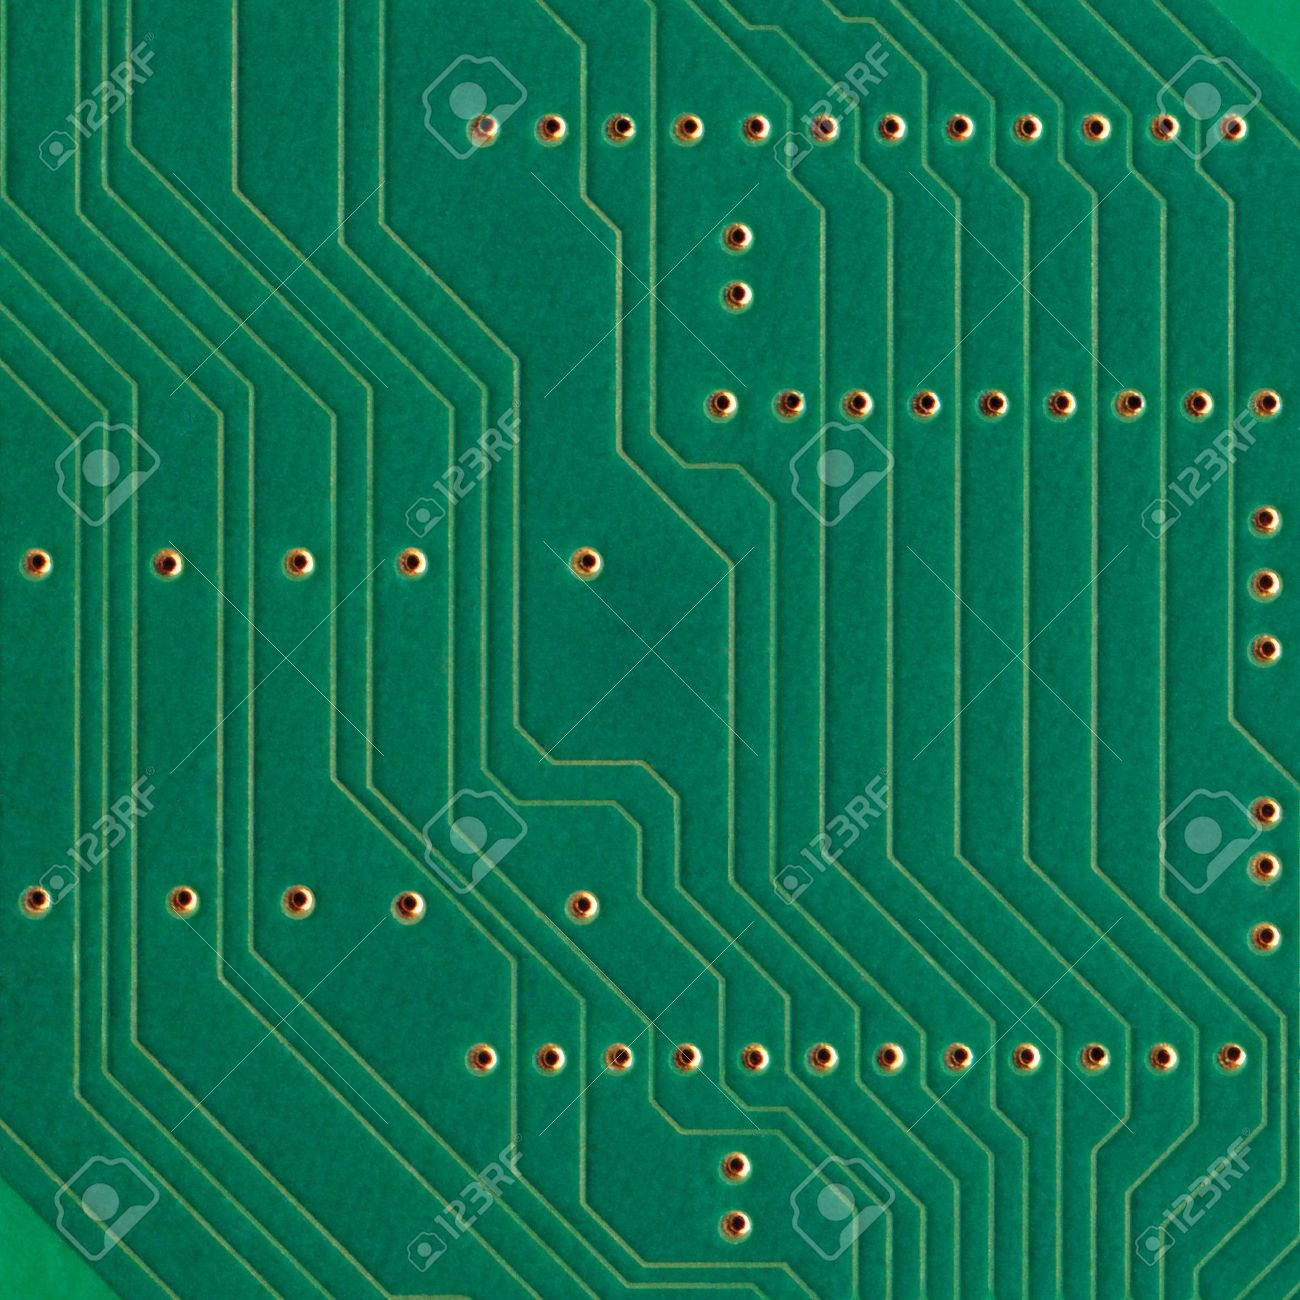 Group Of Circuit Plate Background Board Stock Images Image 31188634 Electronic Photo Colourbox